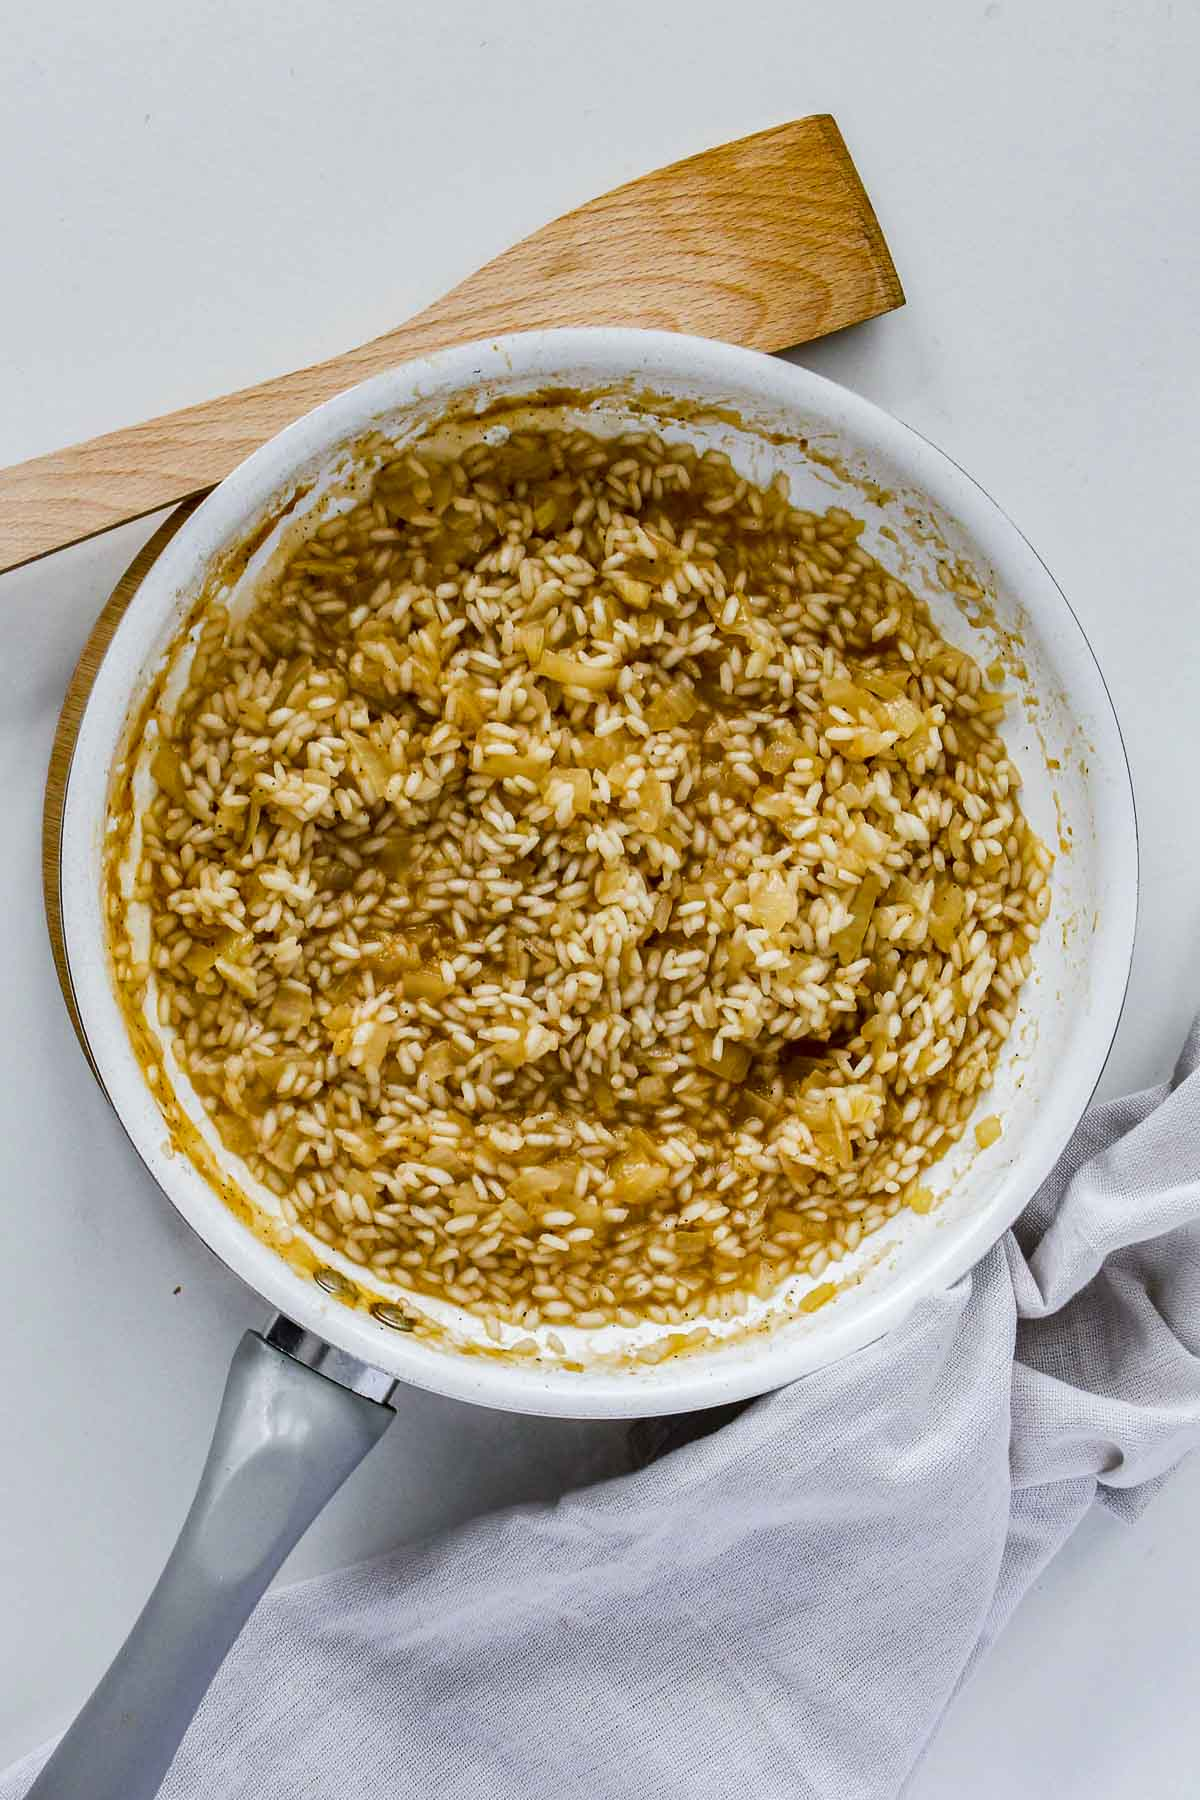 Arborio rice in a pan with the wine reducing.